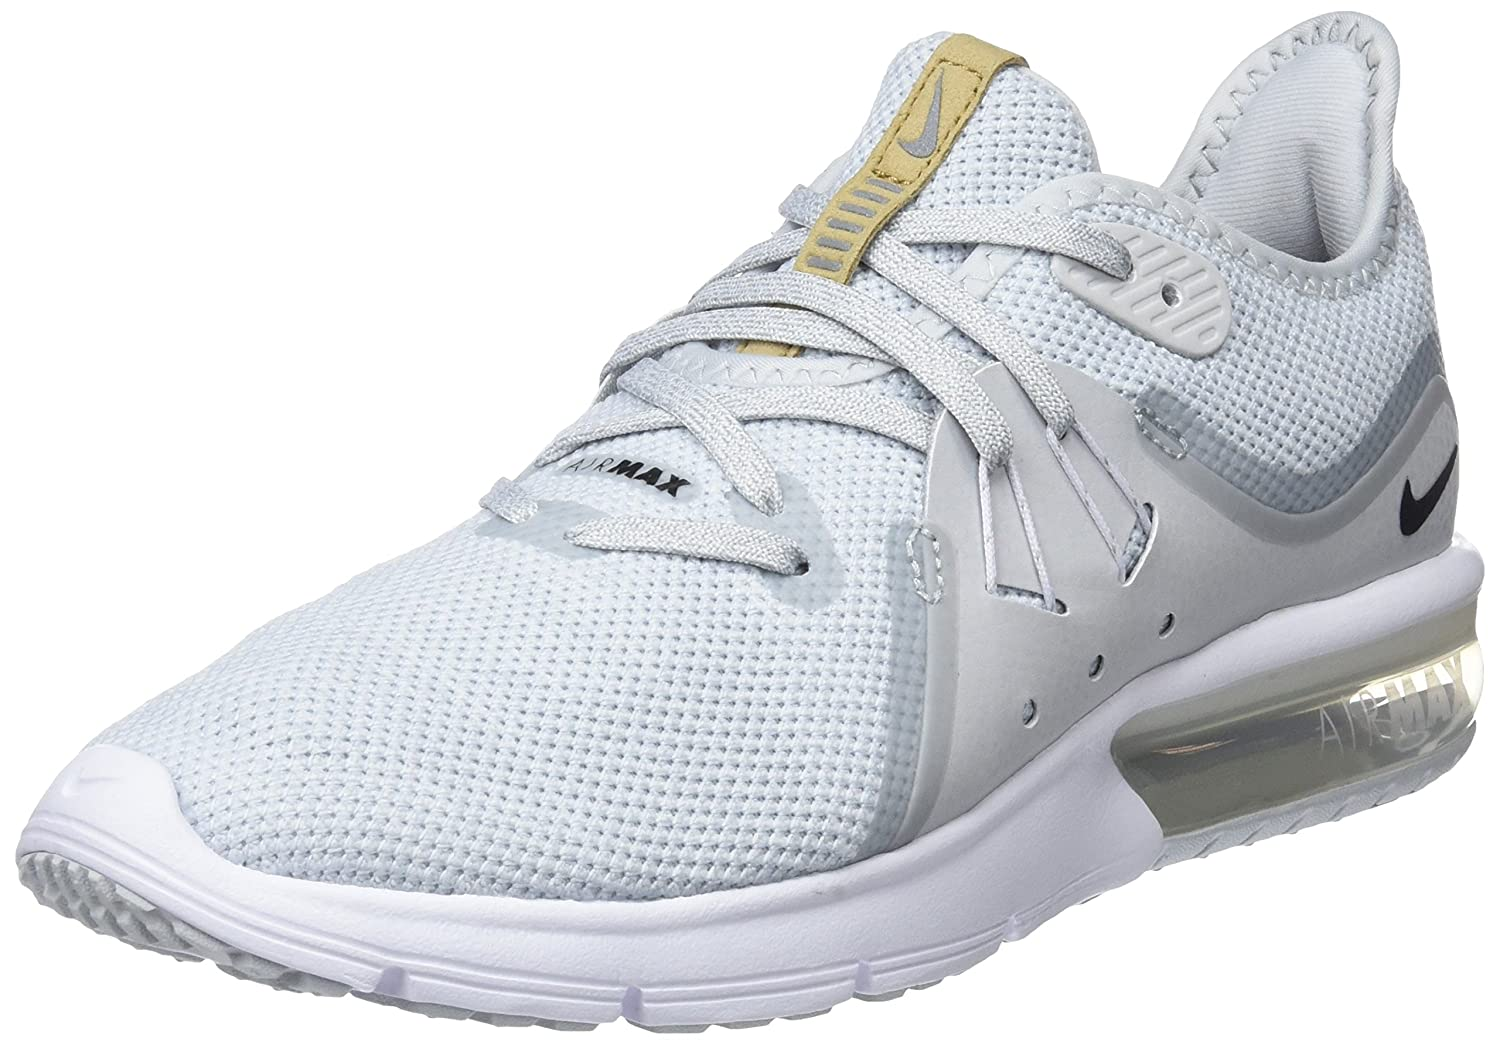 Nike Damen WMNS Air Max Sequent 3 Sneakers